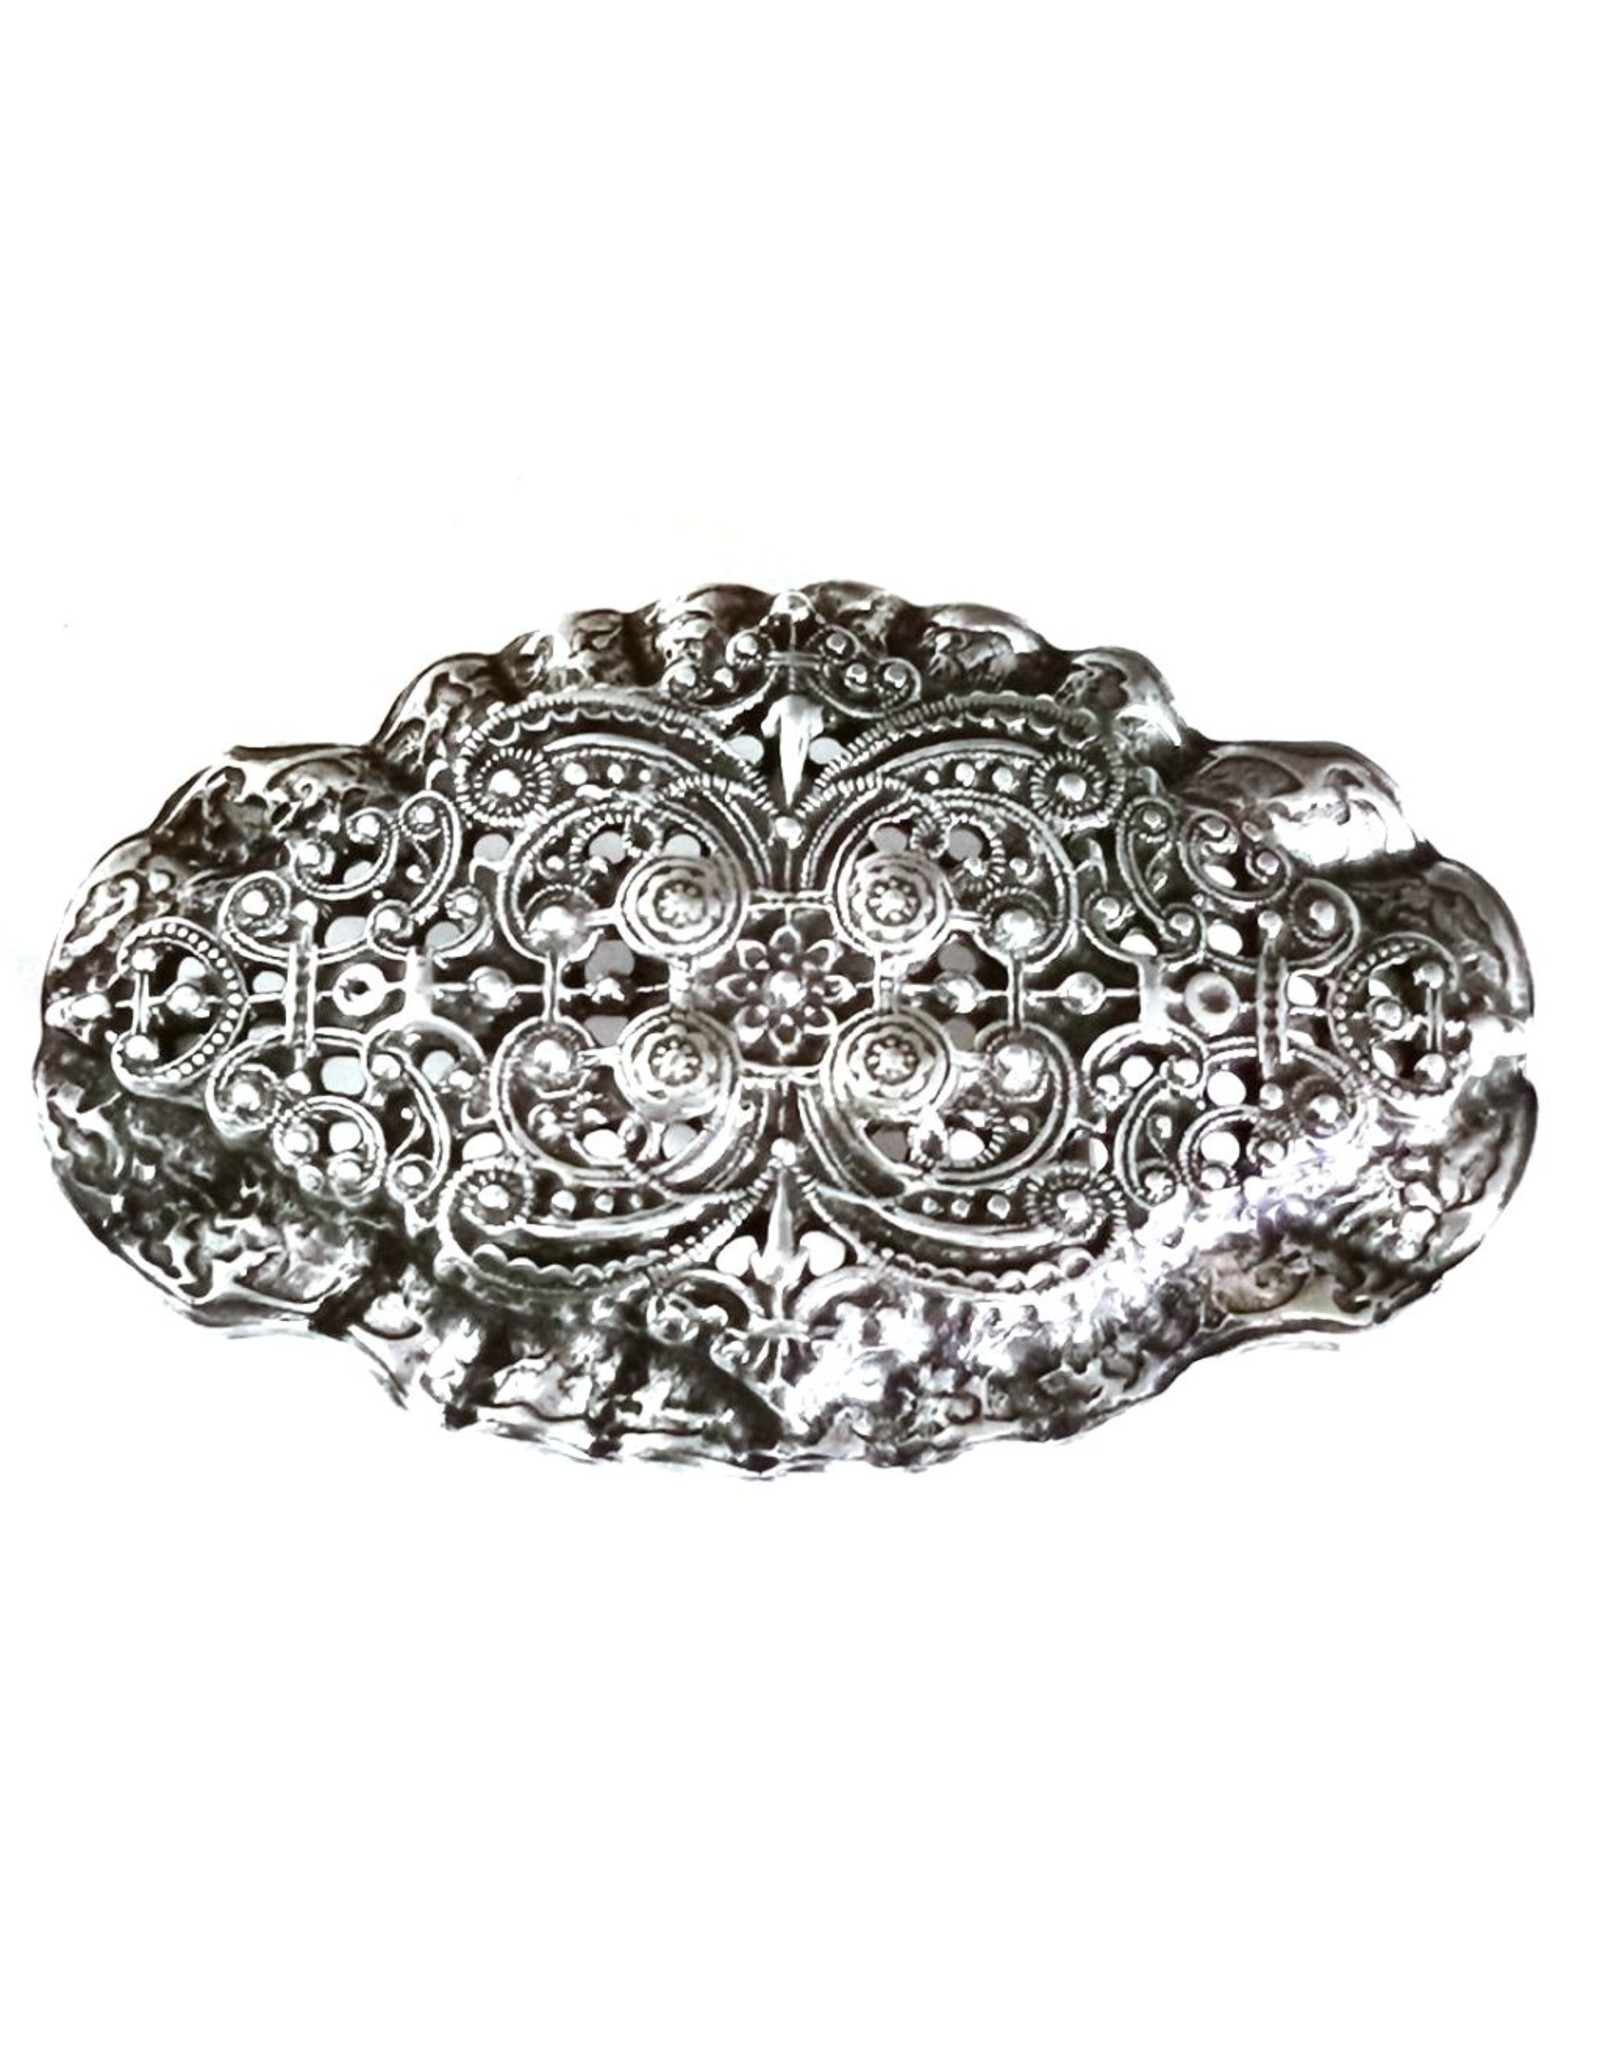 Acco Buckles - Buckle with Victorian Ornament - solid metal